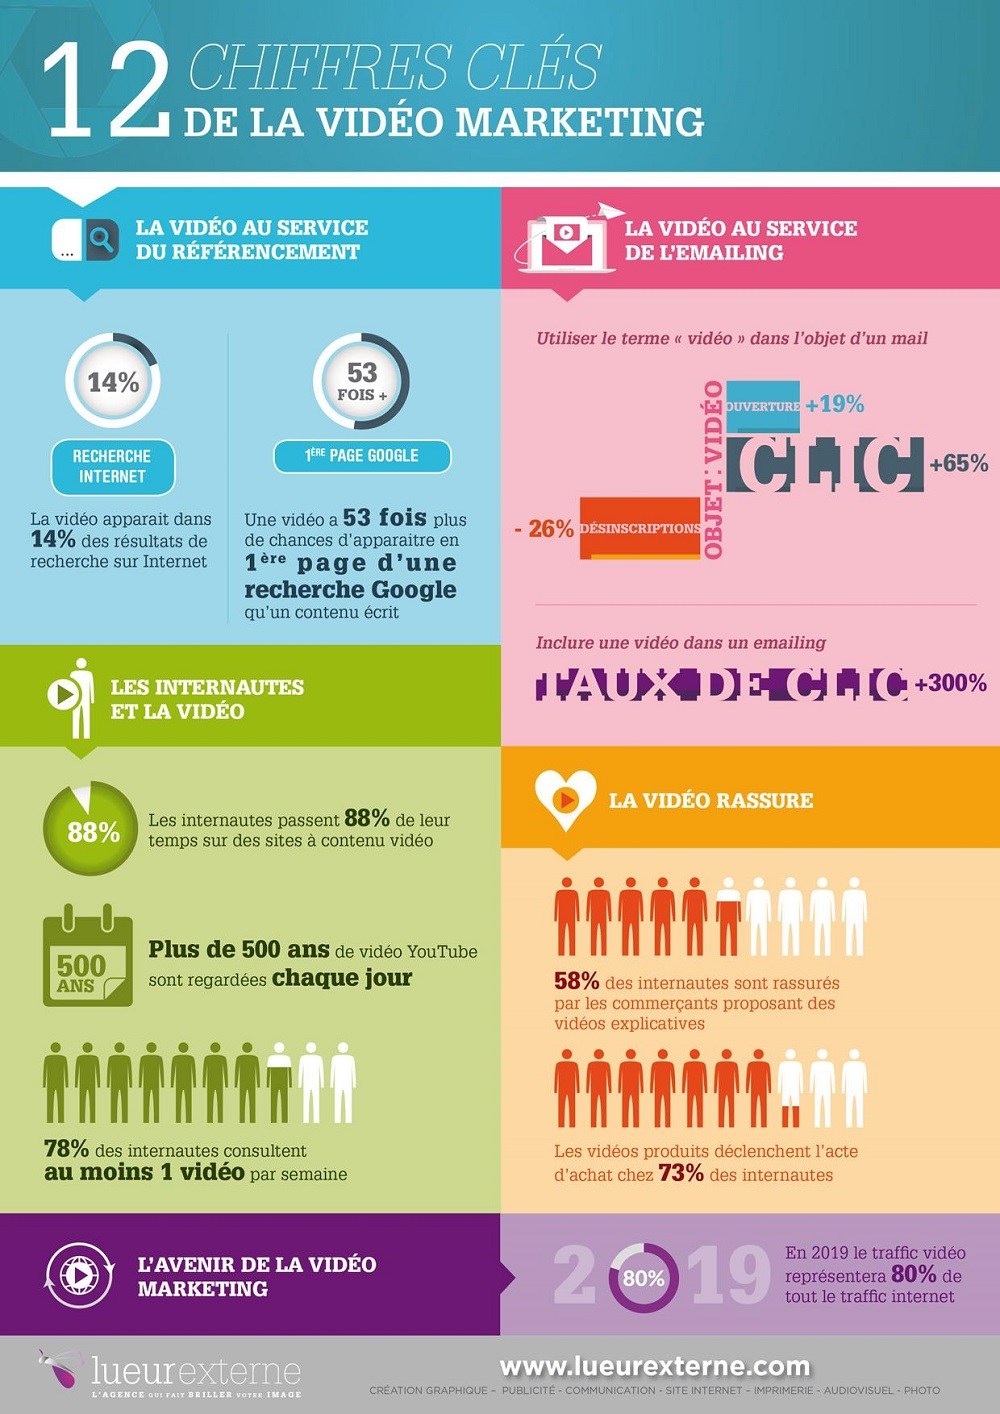 infographie-video-marketing-chiffres-cls